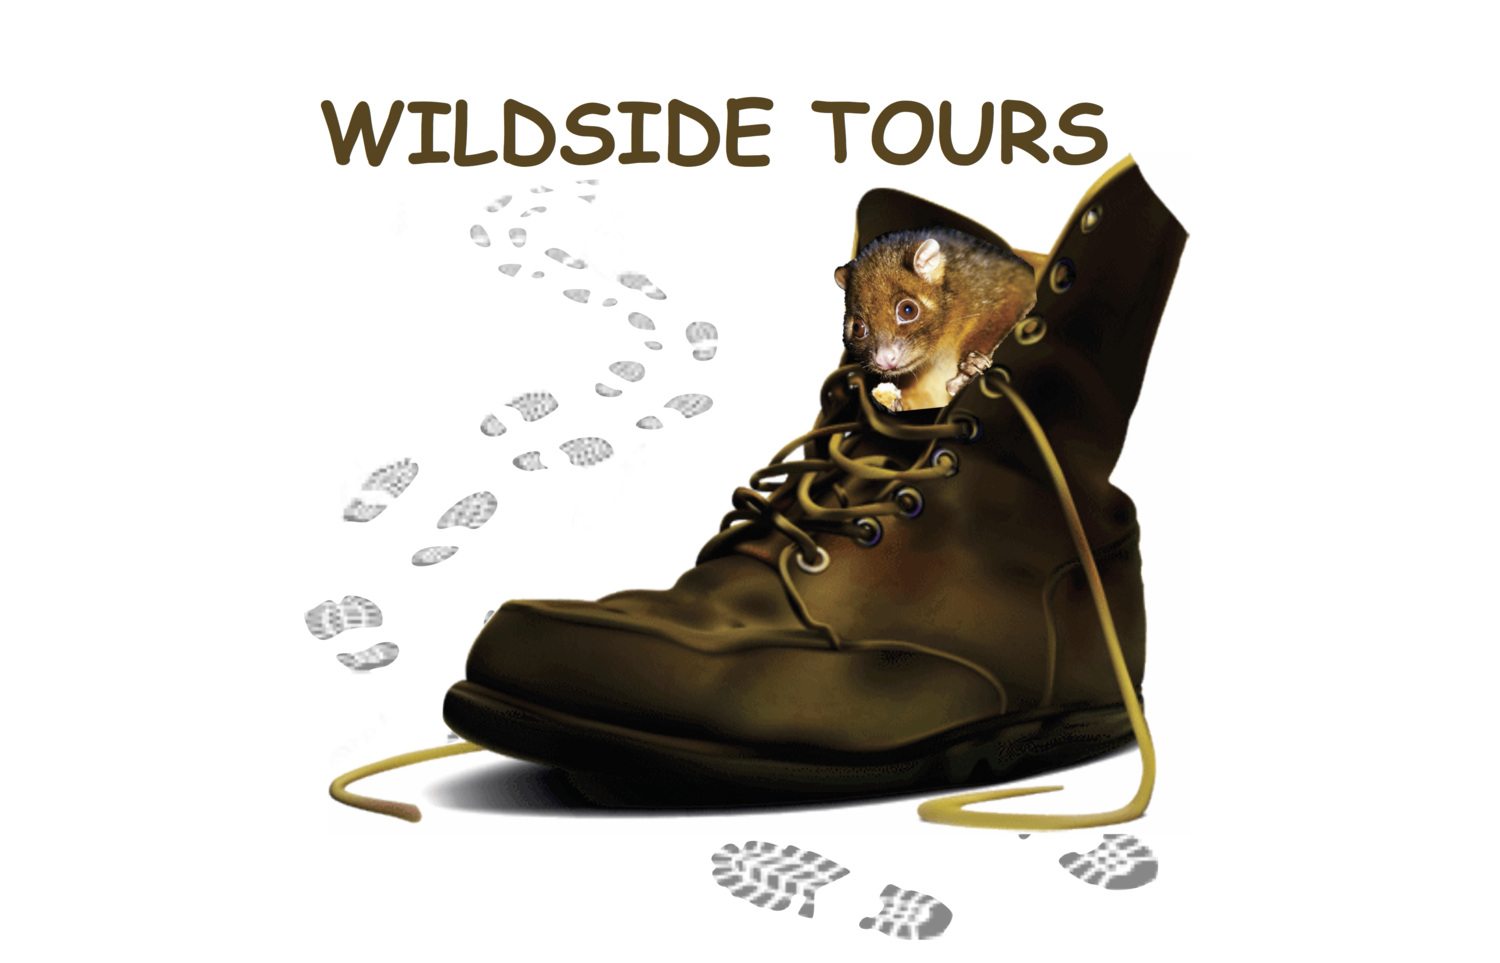 WILDSIDE TOURS